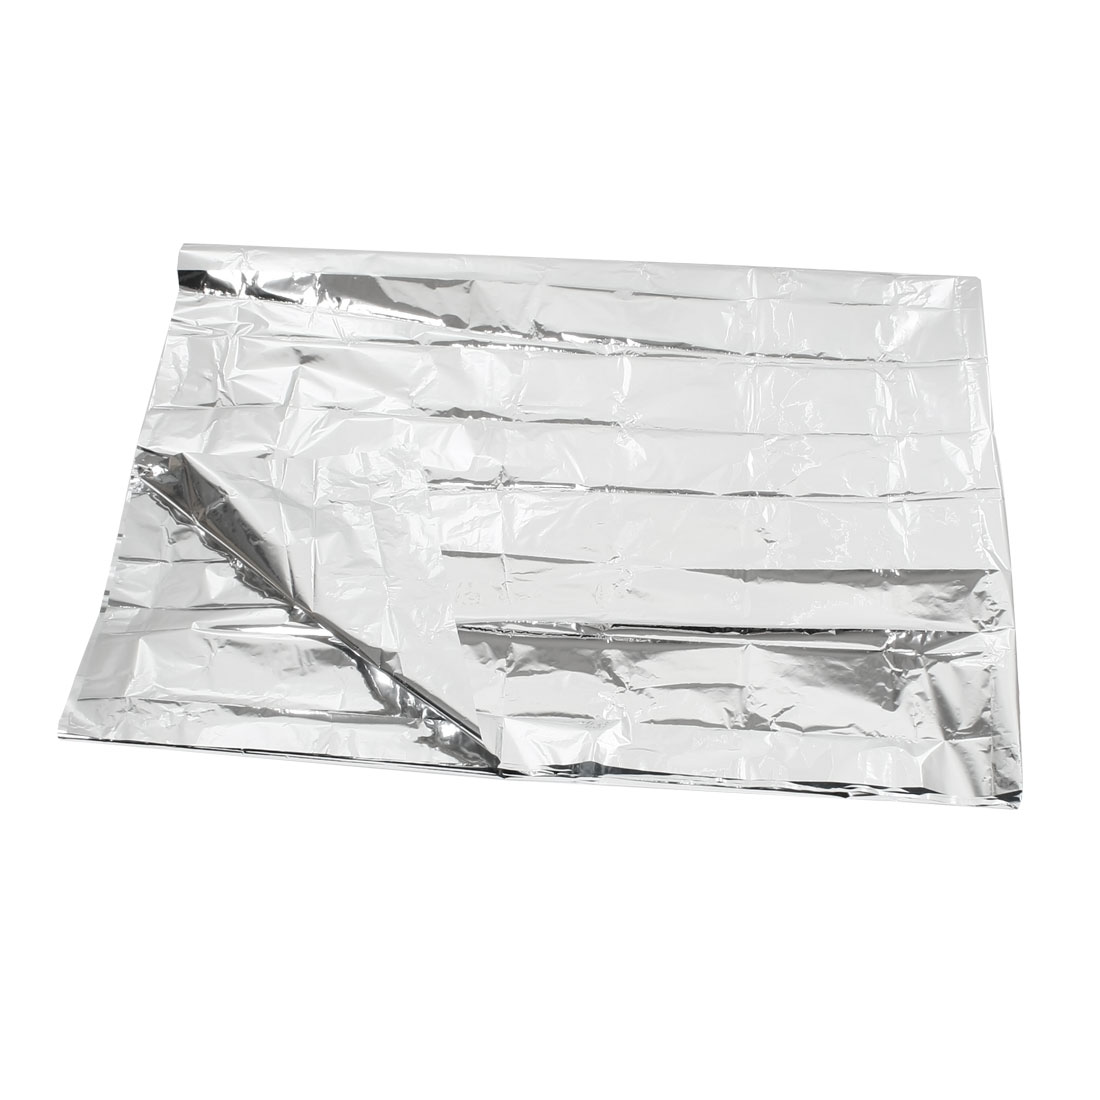 1.4M x 2M Outdoor Hiking Camping Mylar Emergency Survival Rescue Blanket